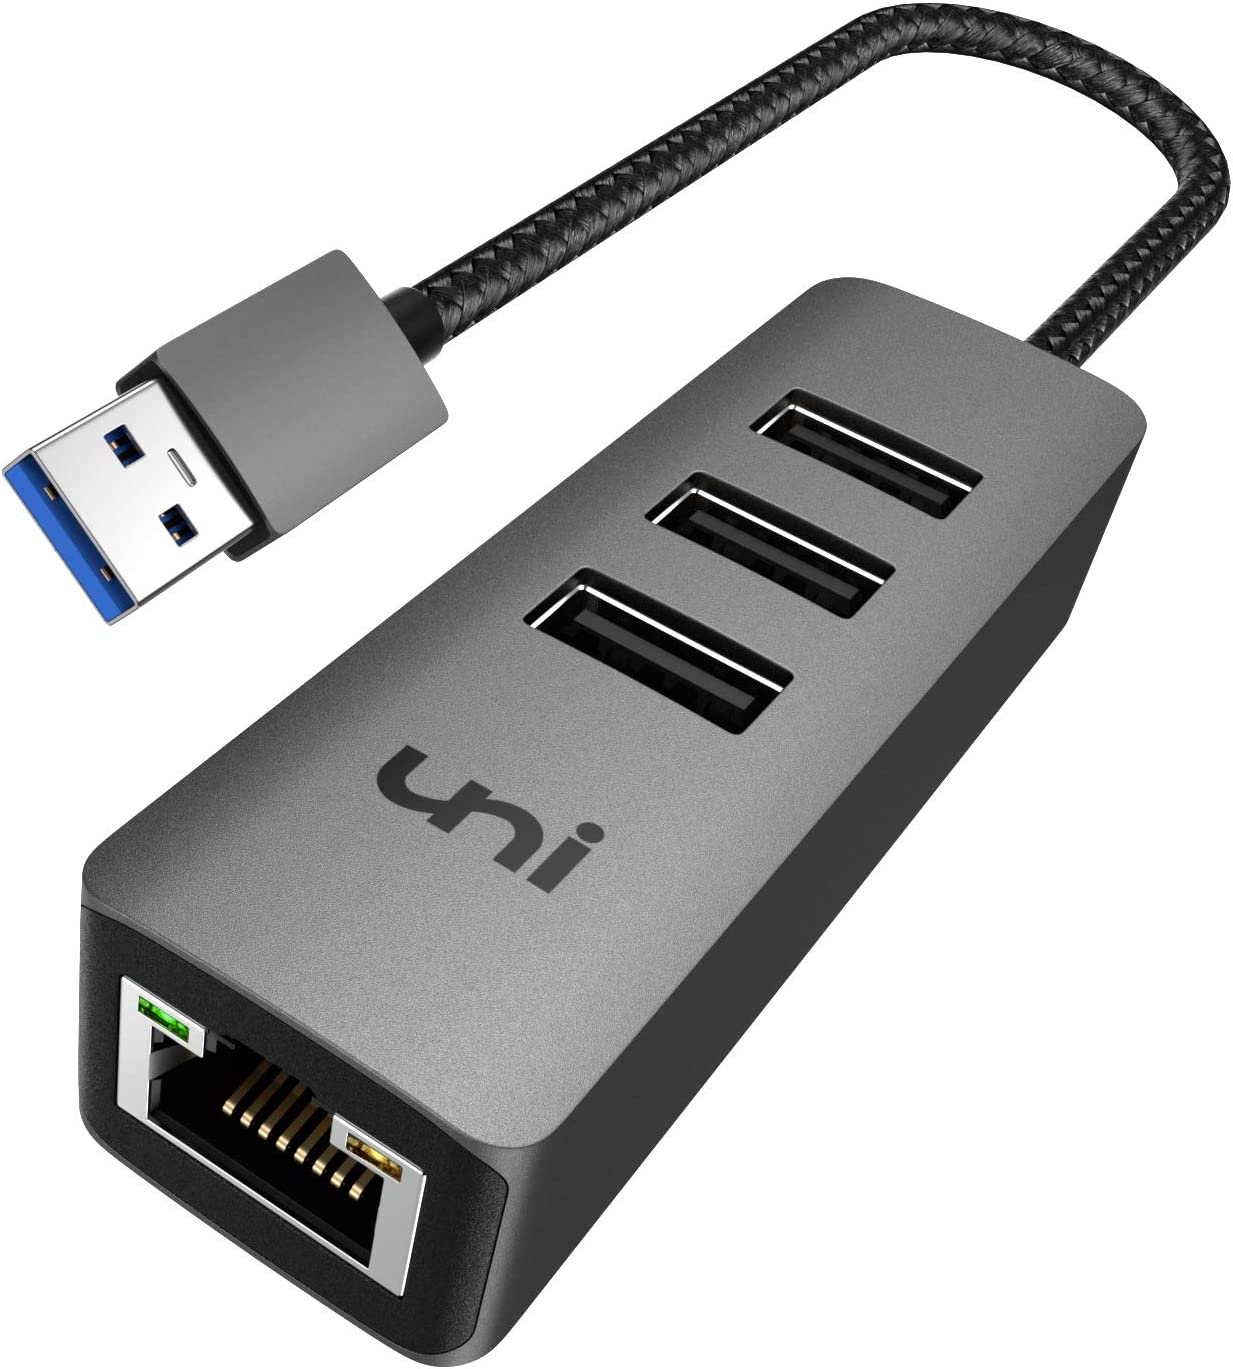 Broonel USB Ethernet USB Network Adapter,LAN Adapter with Multi USB 3.0 Ports Compatible with The Acer ConceptD 9 D 9 Ezel